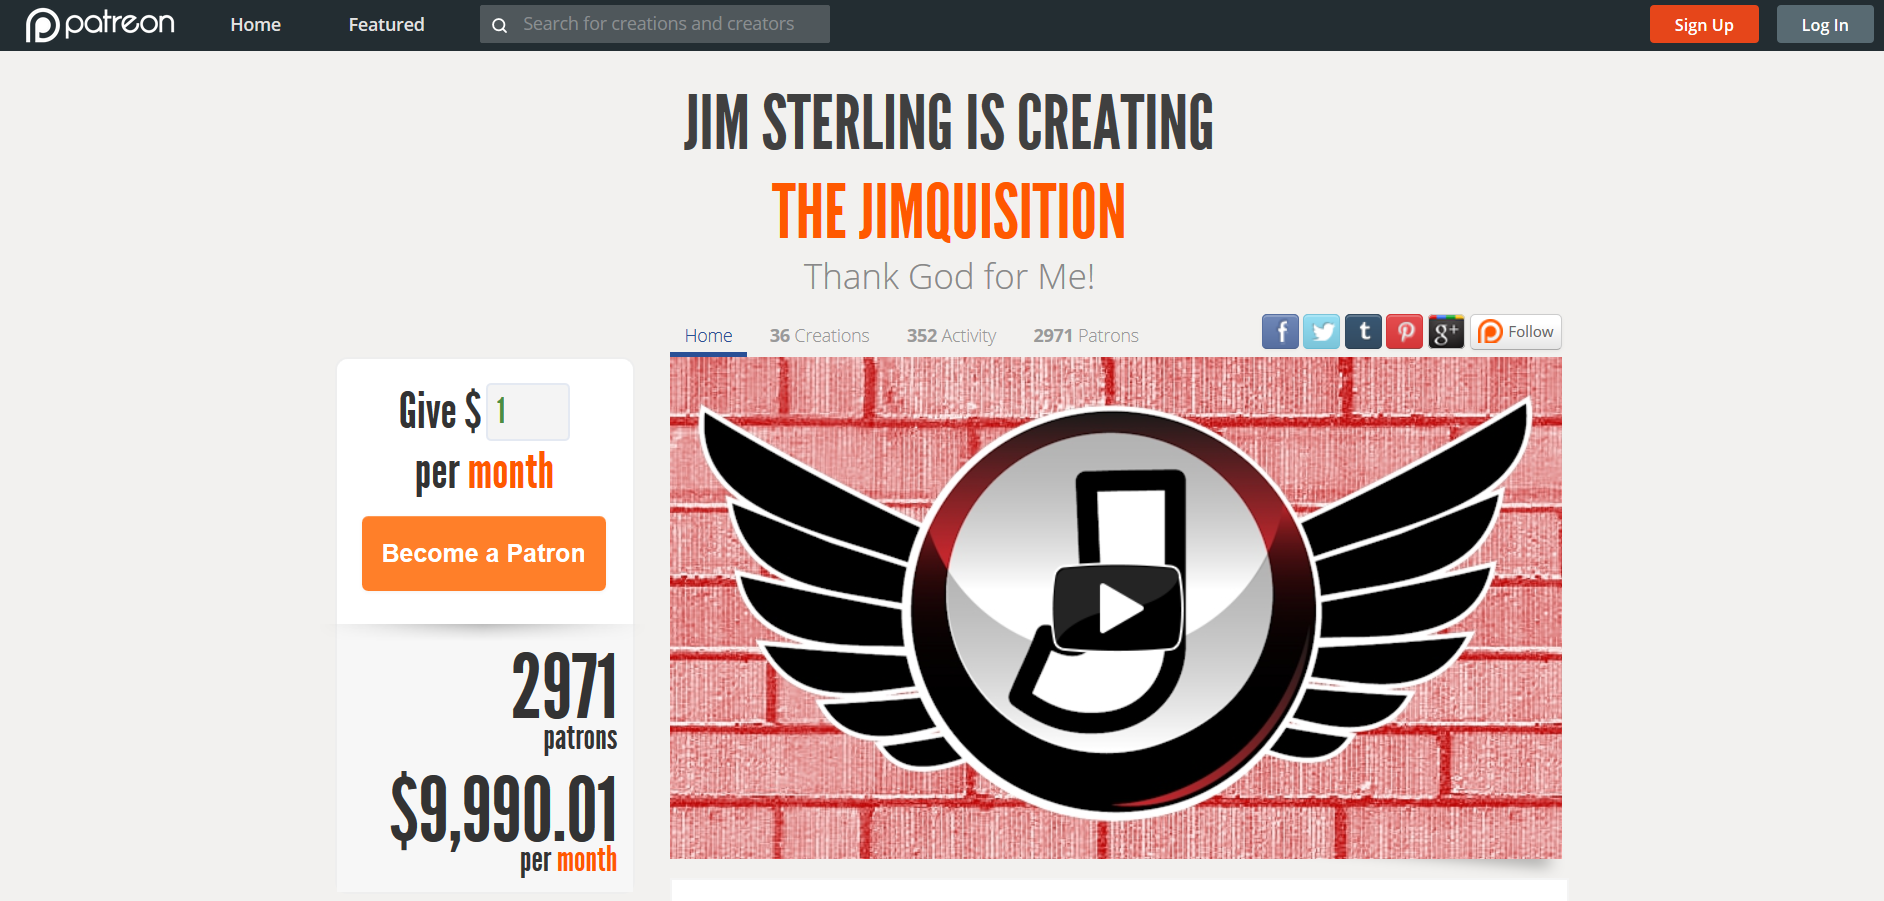 Patreon.Jim Sterling